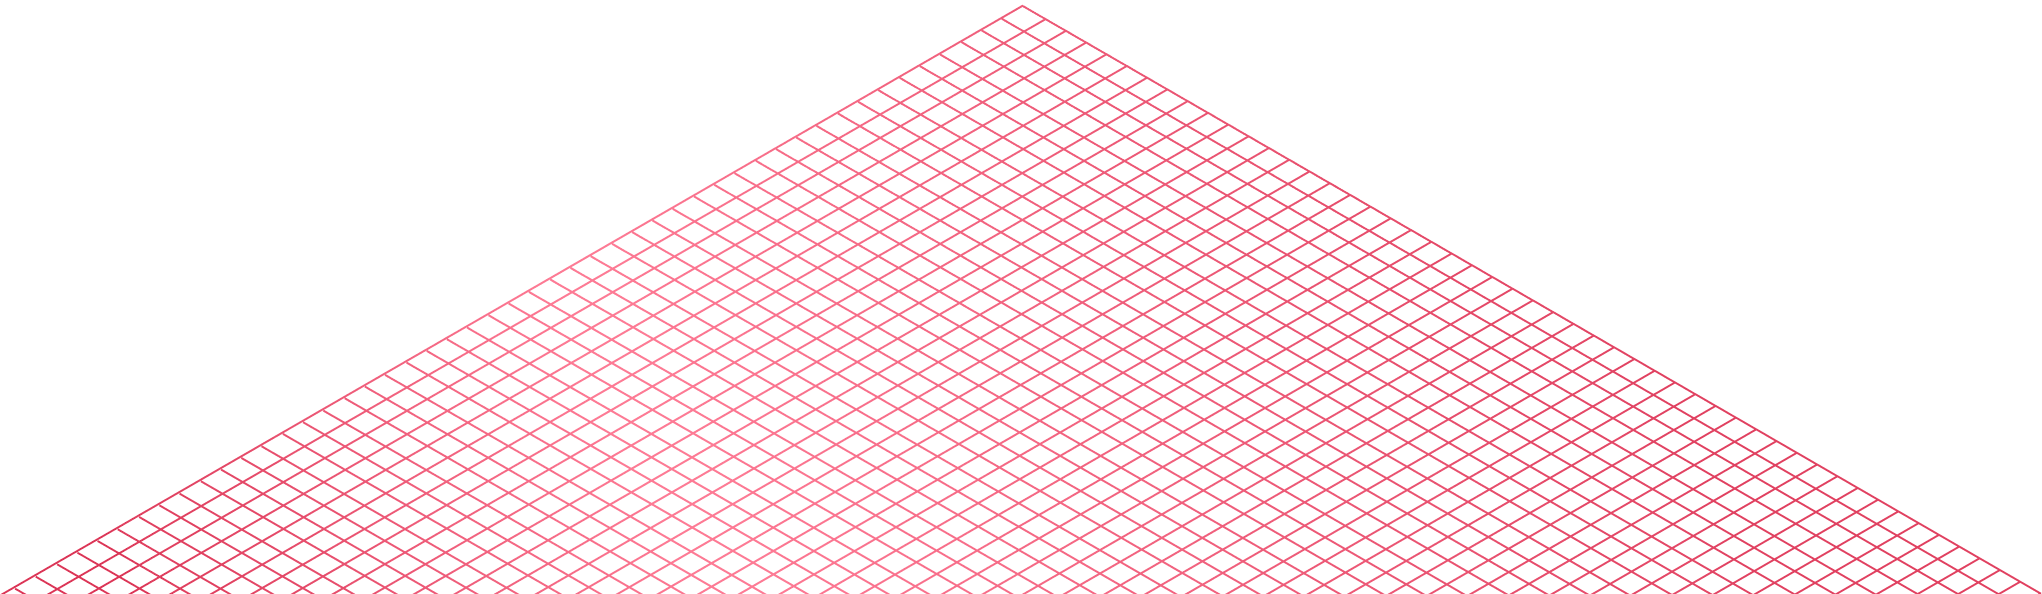 isometric-grid